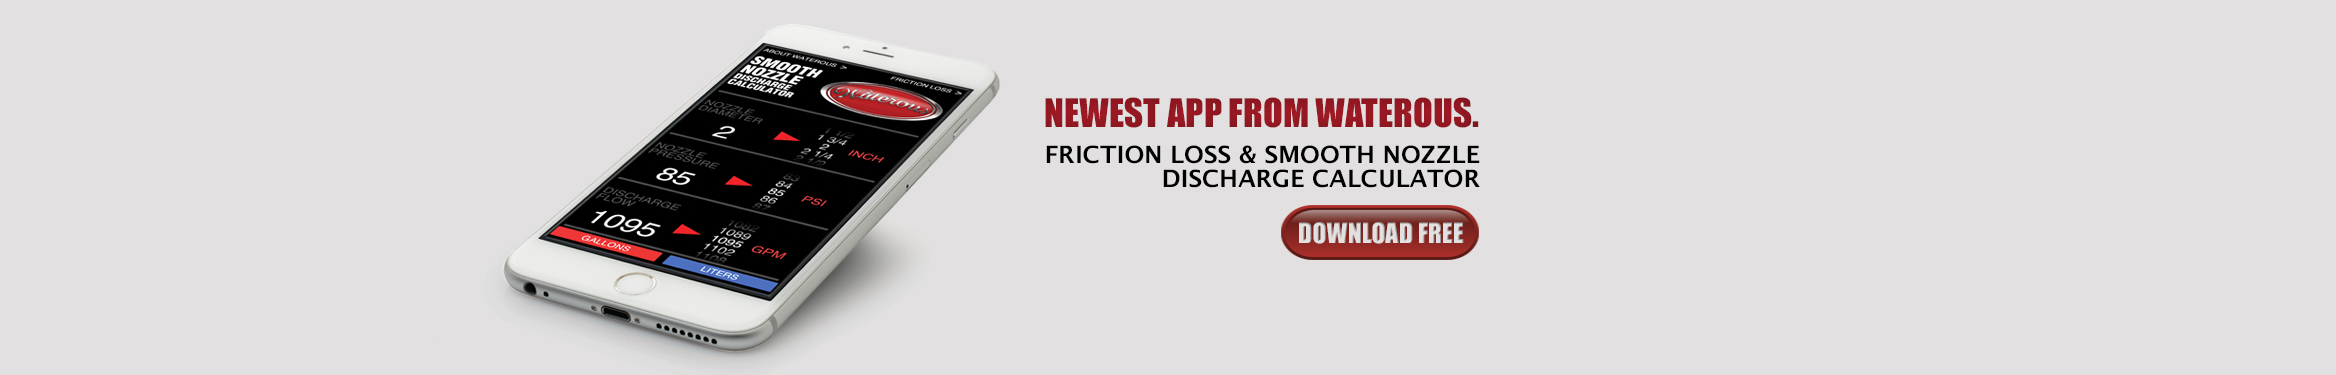 Friction Loss Smooth Nozzle Discharge App